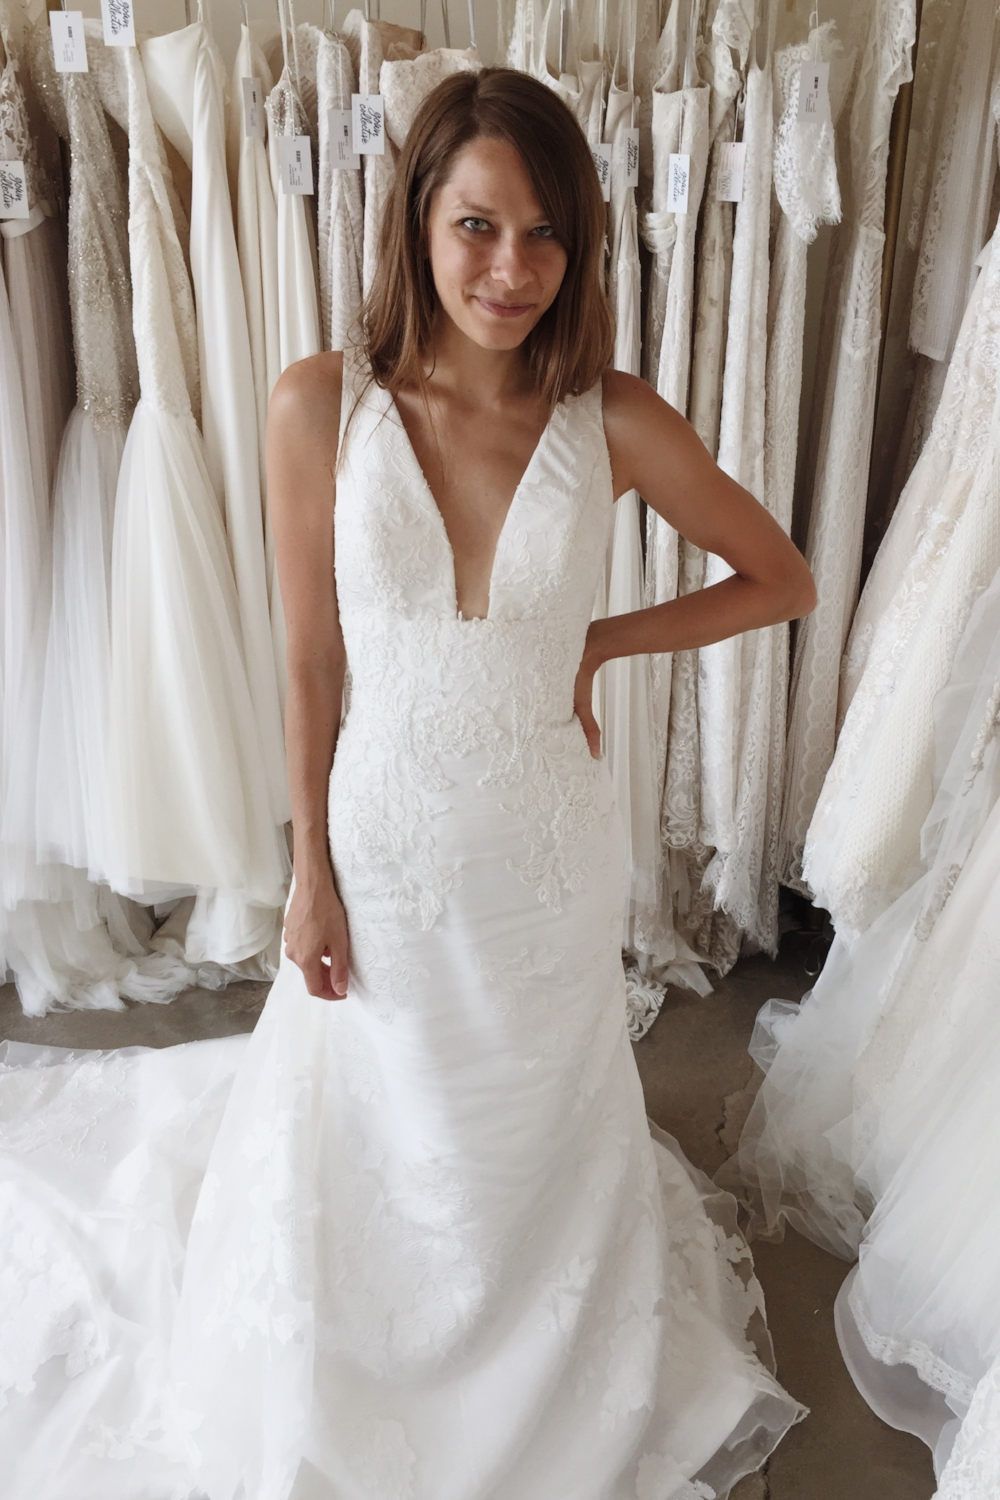 Justin alexander 8947 - was:$2640our price: $1848Sale price: $1570